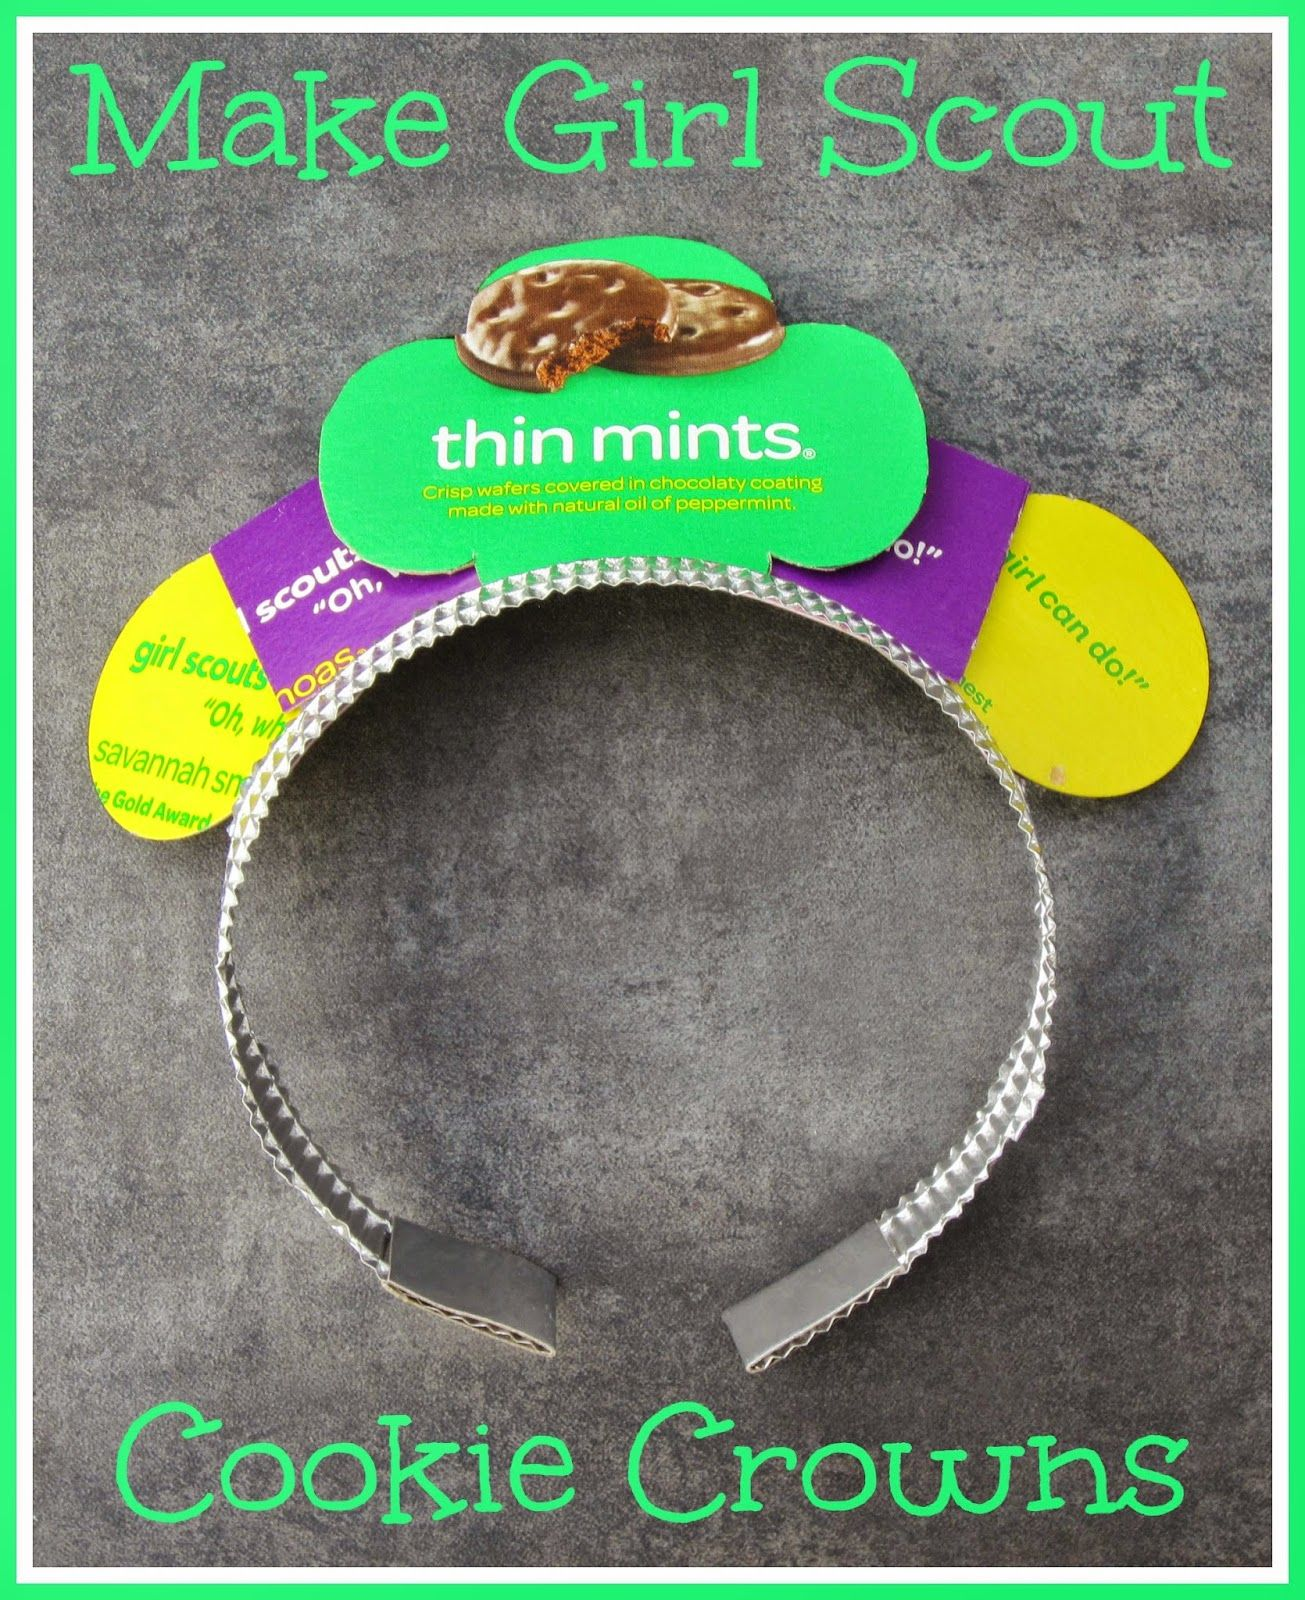 Girl scout scrapbook ideas - The Diary Of A Nouveau Soccer Mom Make Girl Scout Cookie Crowns Cookie Booth